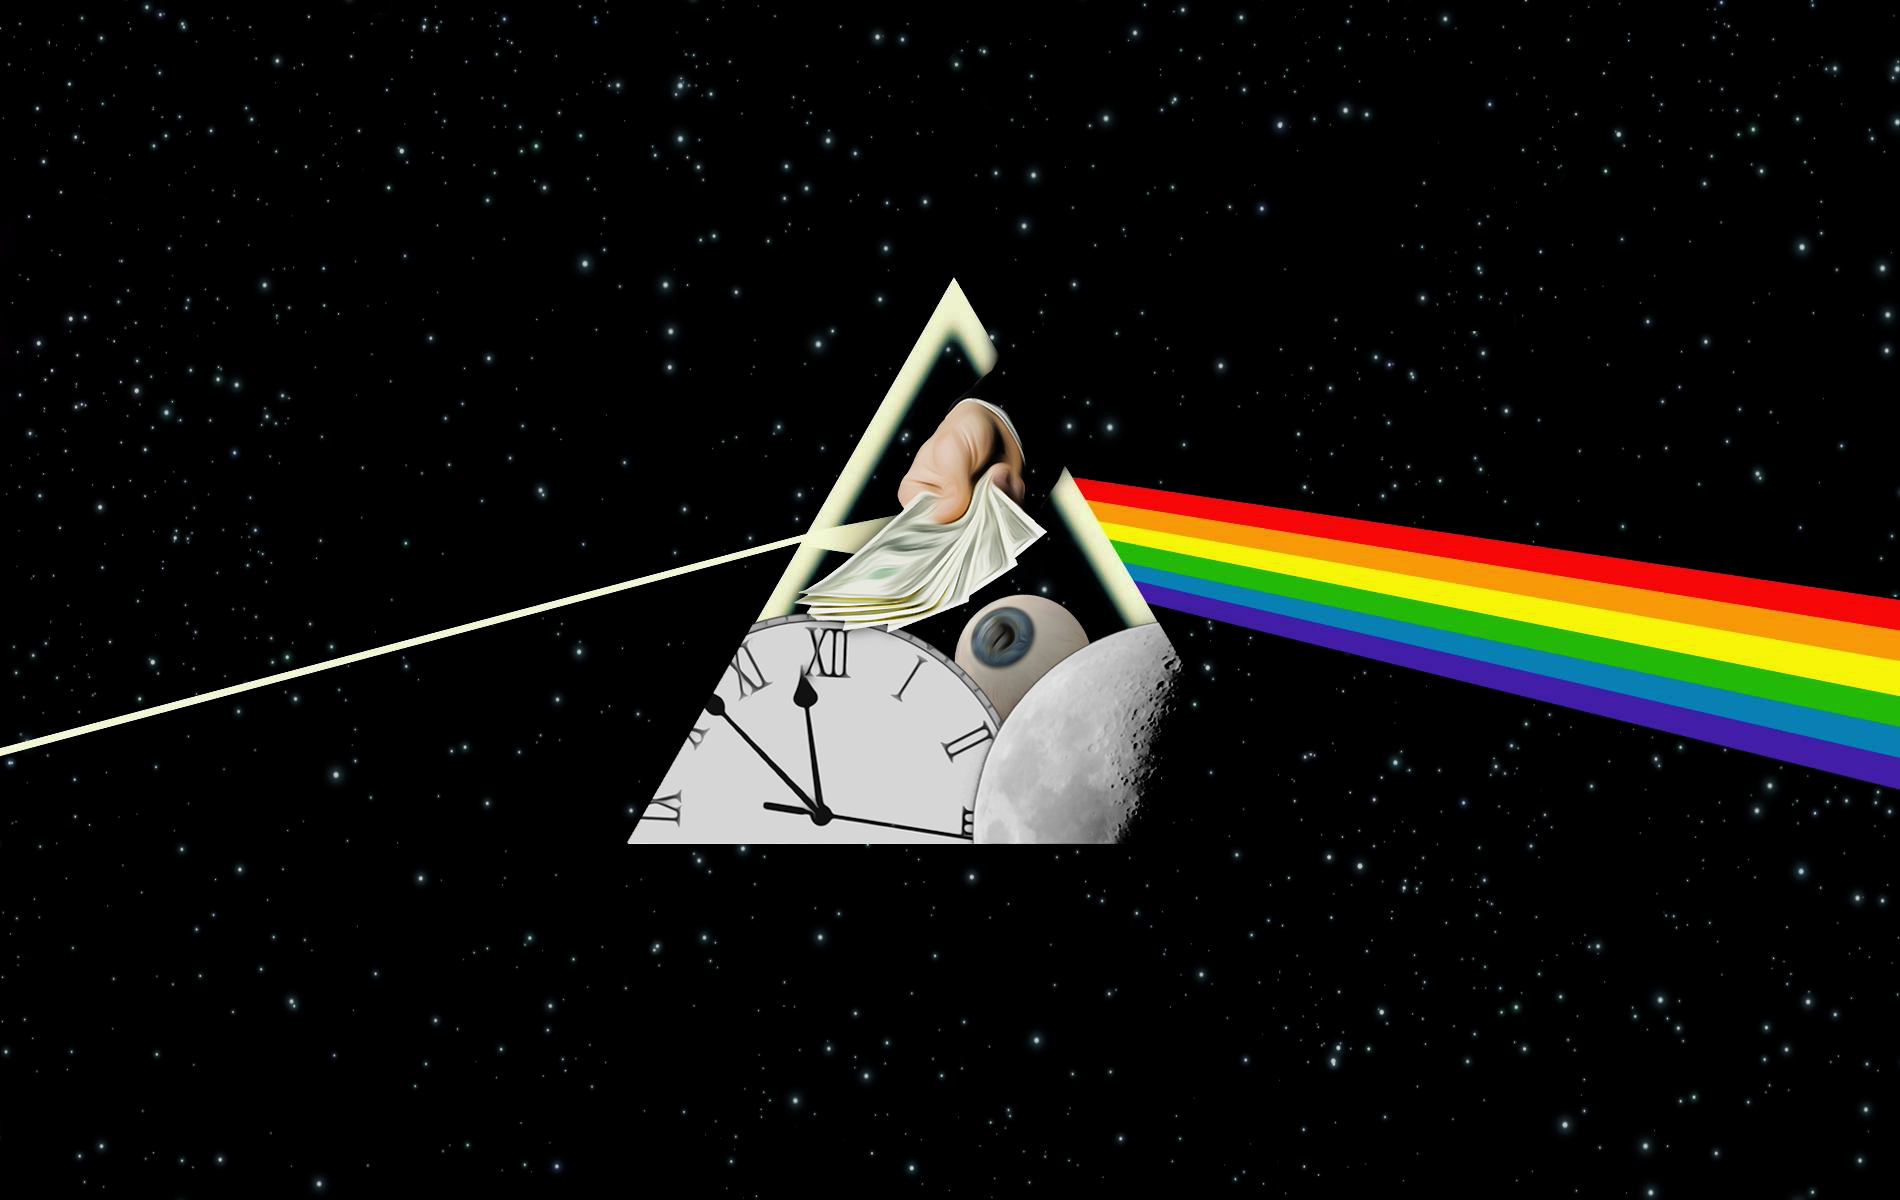 Download Dark Side Of The Moon Wallpaper Gallery